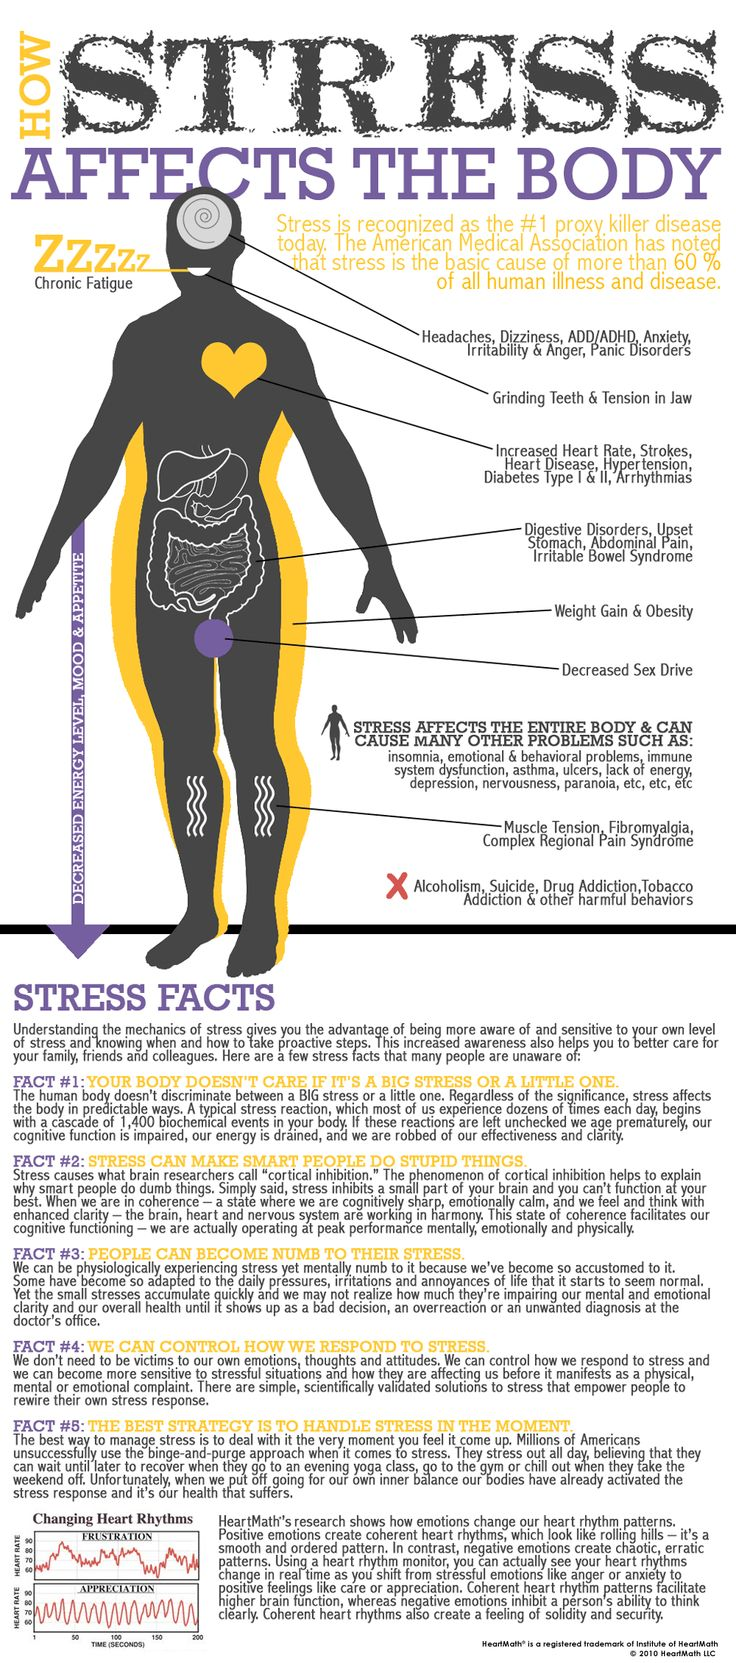 Stress on the Body [infographic]